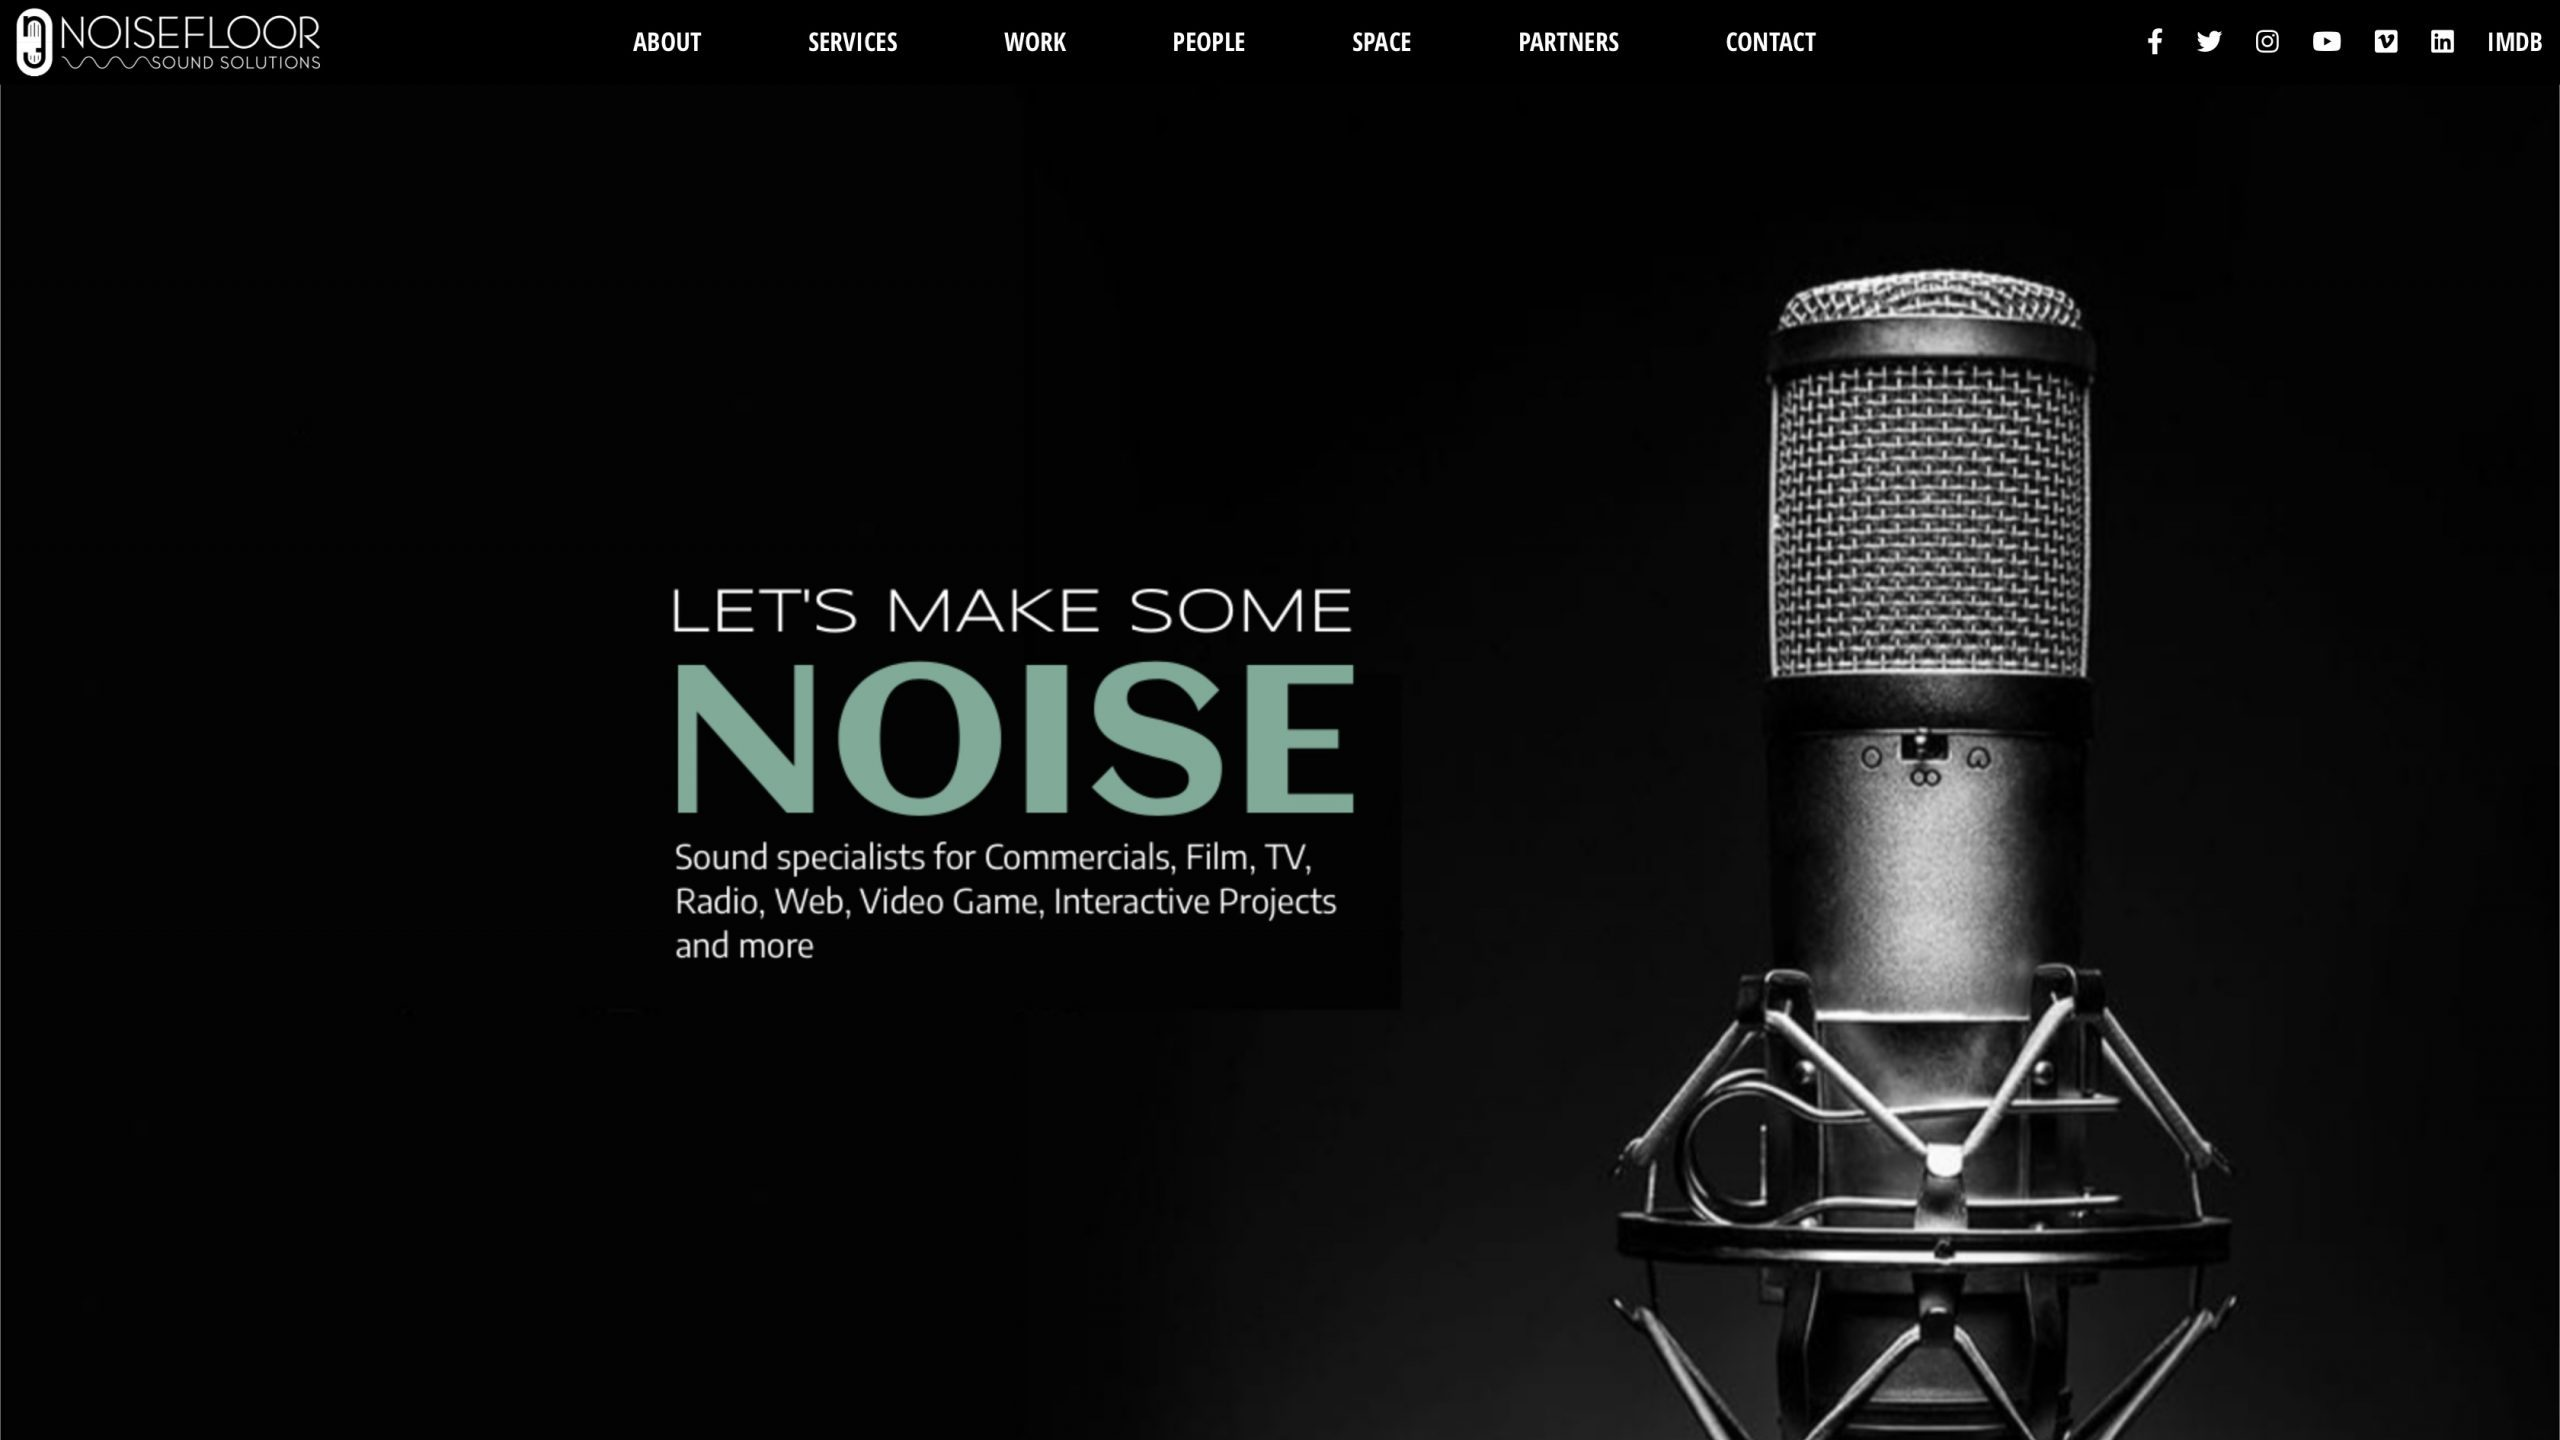 NoiseFloor Website